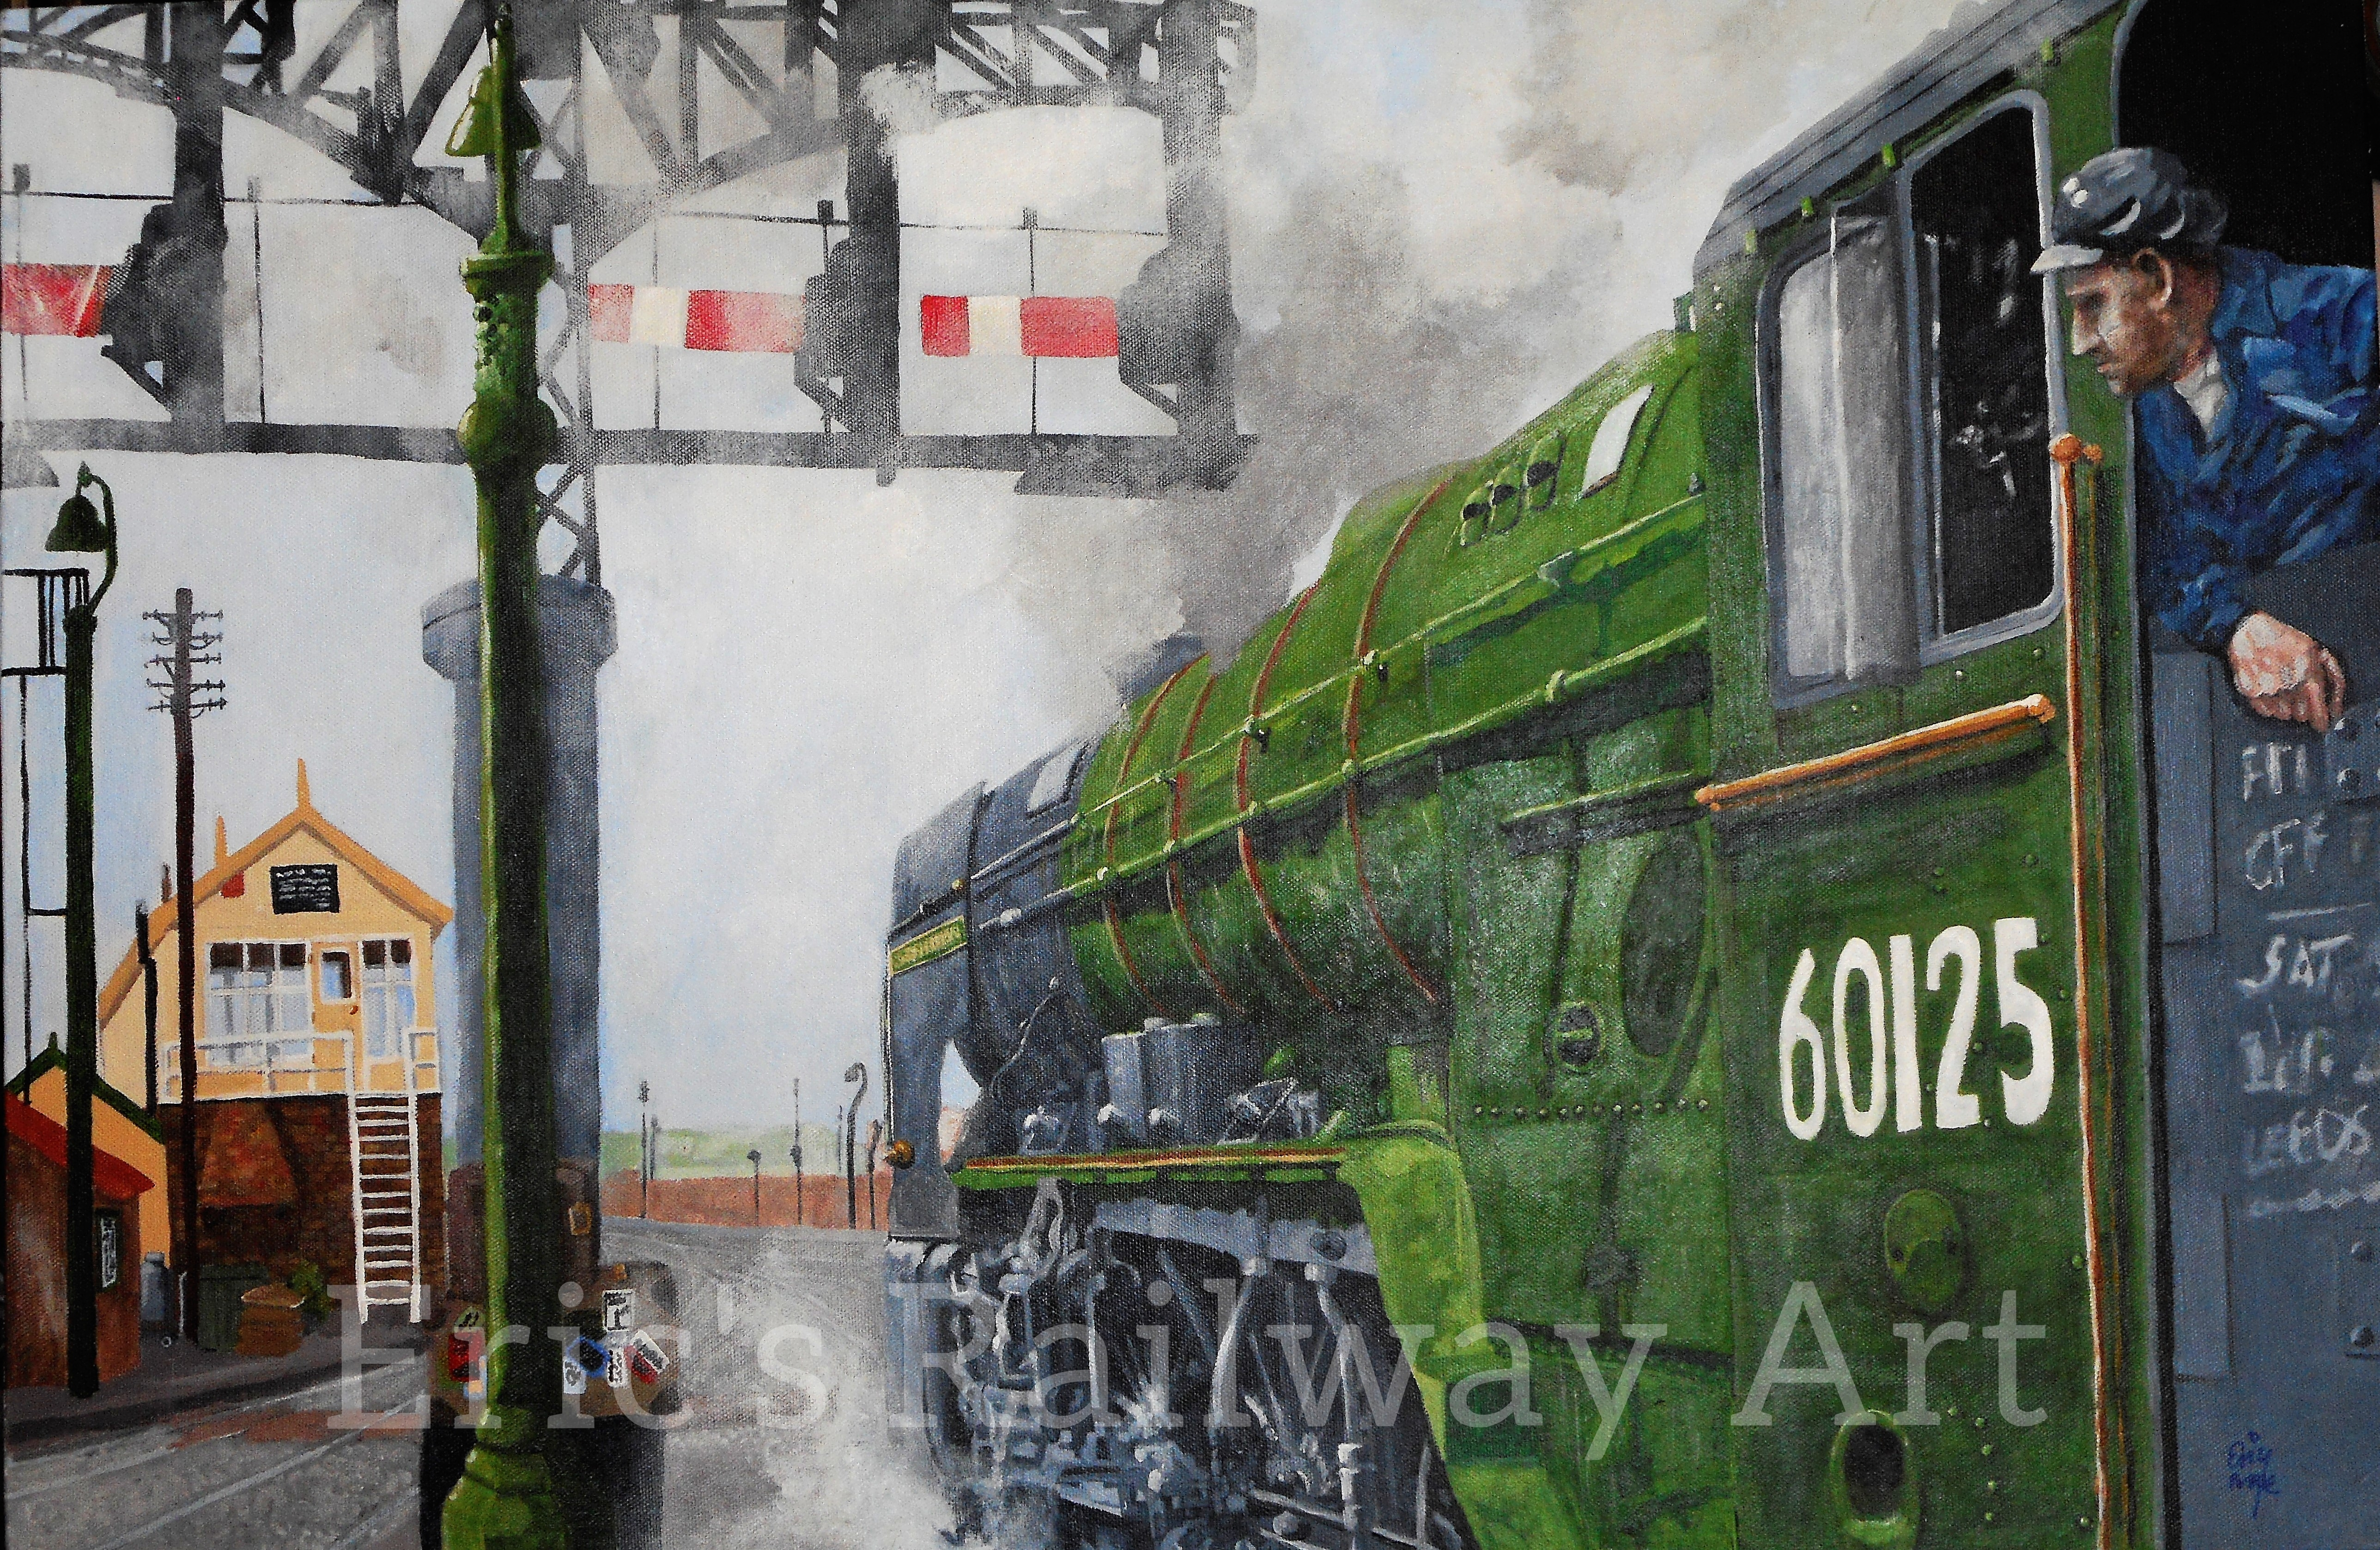 Eric's Railway Art - Scottish Union